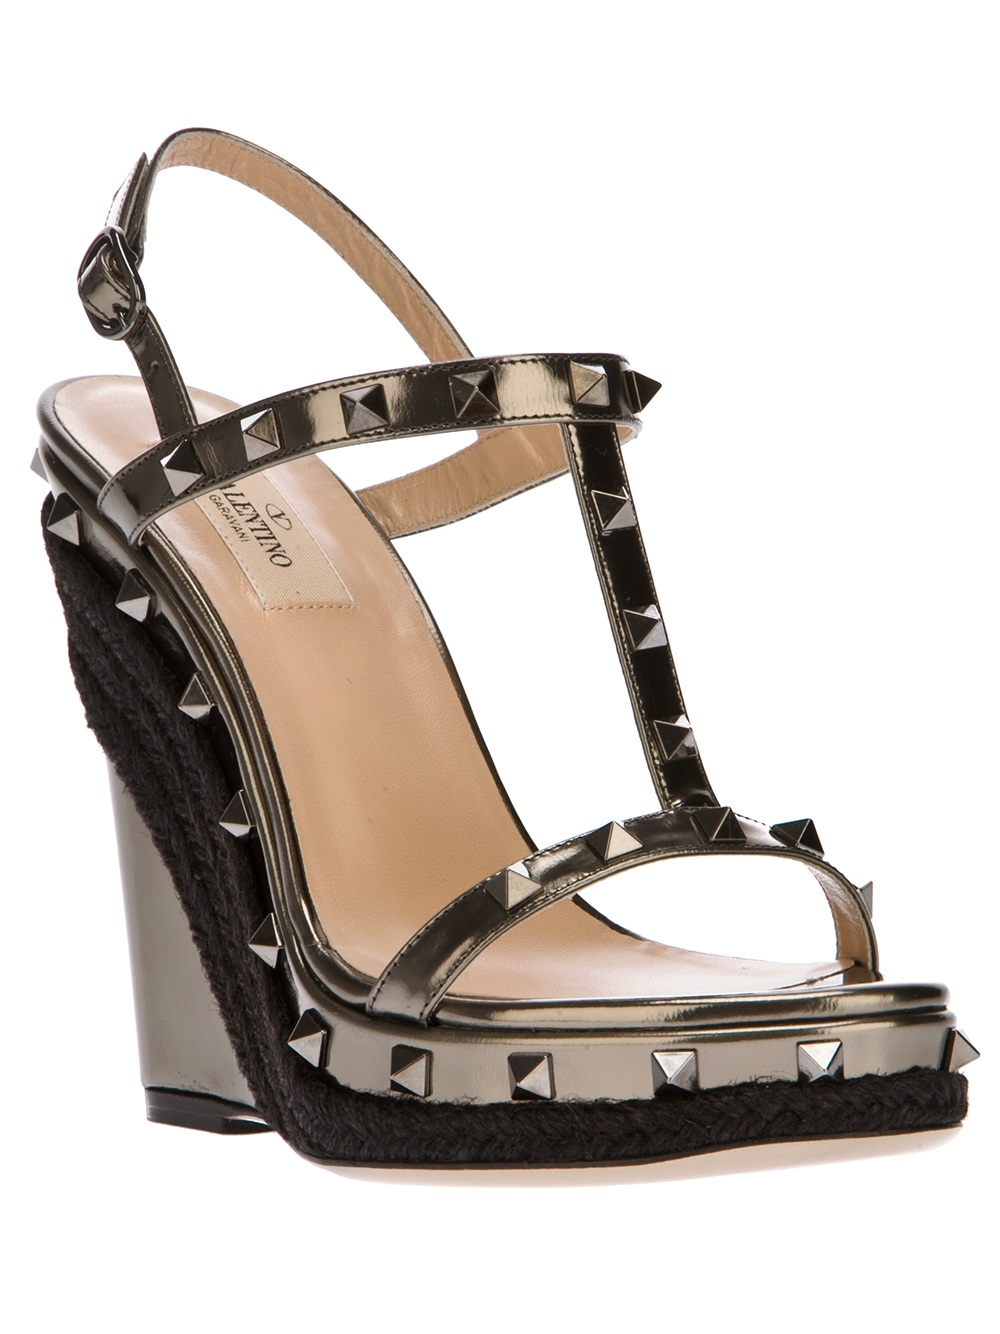 8005d8e2071 Lyst - Valentino Rockstud Wedge Sandal in Brown